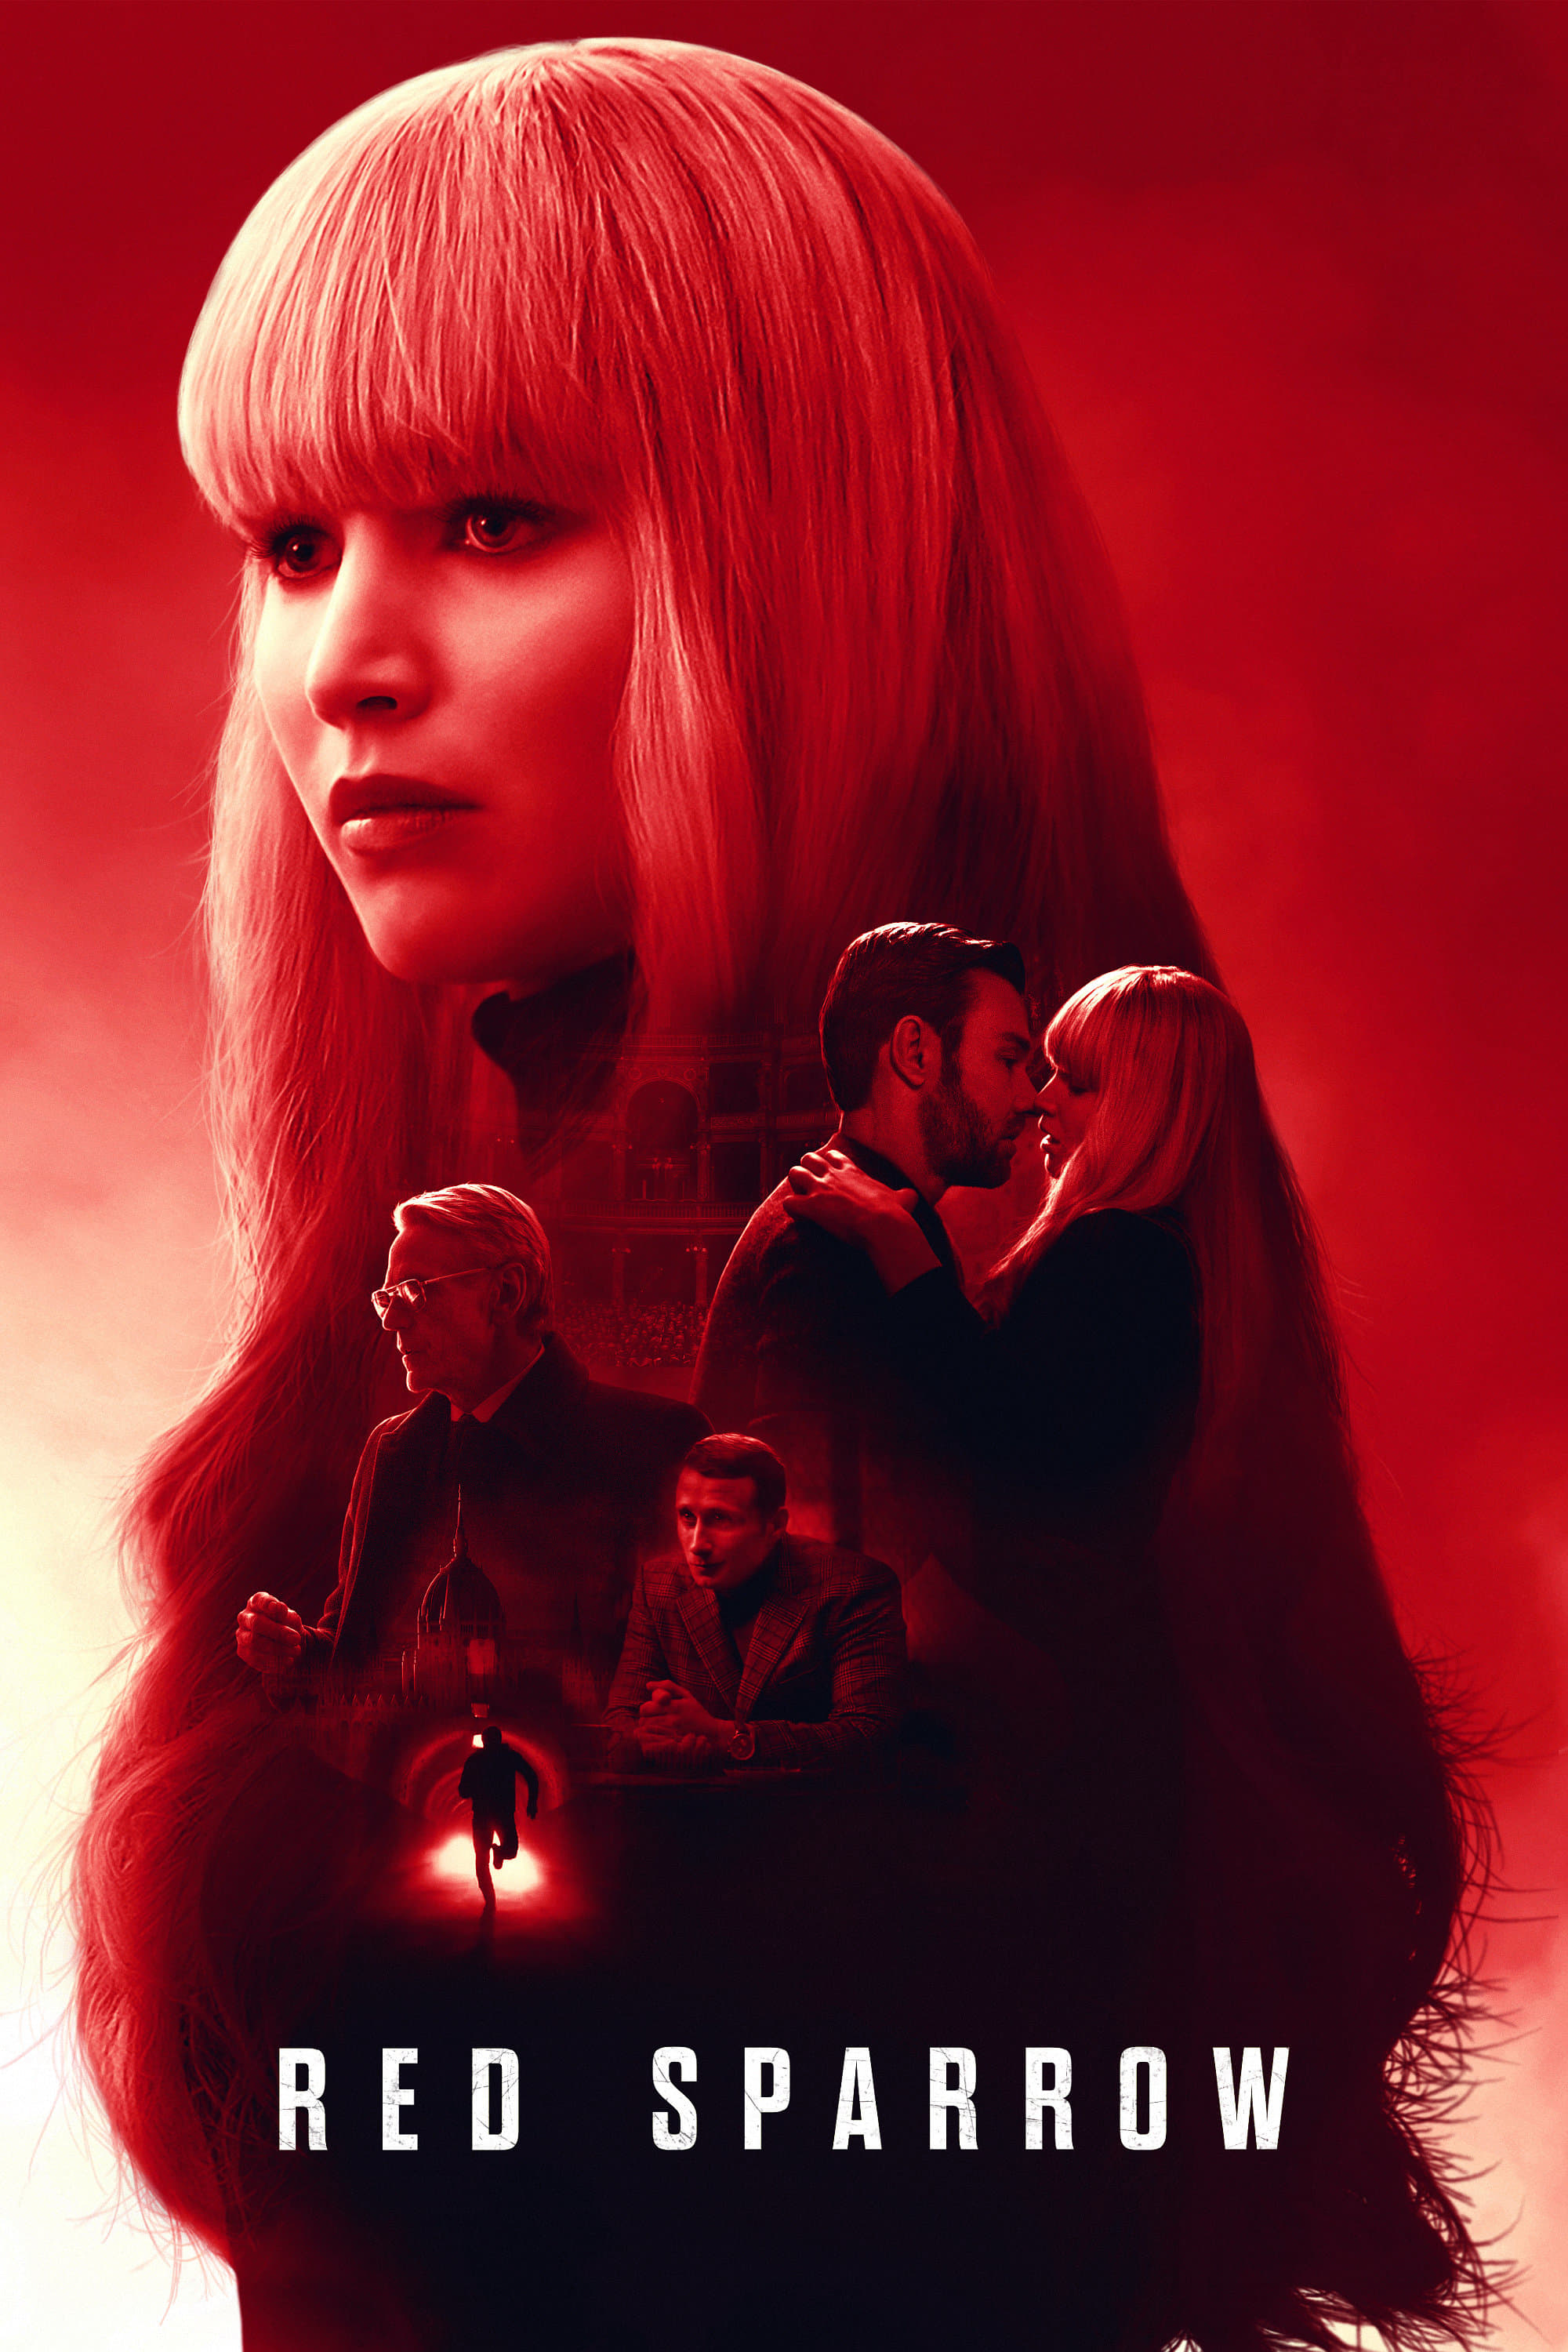 Red Sparrow Movie Poster - ID: 177916 - Image Abyss